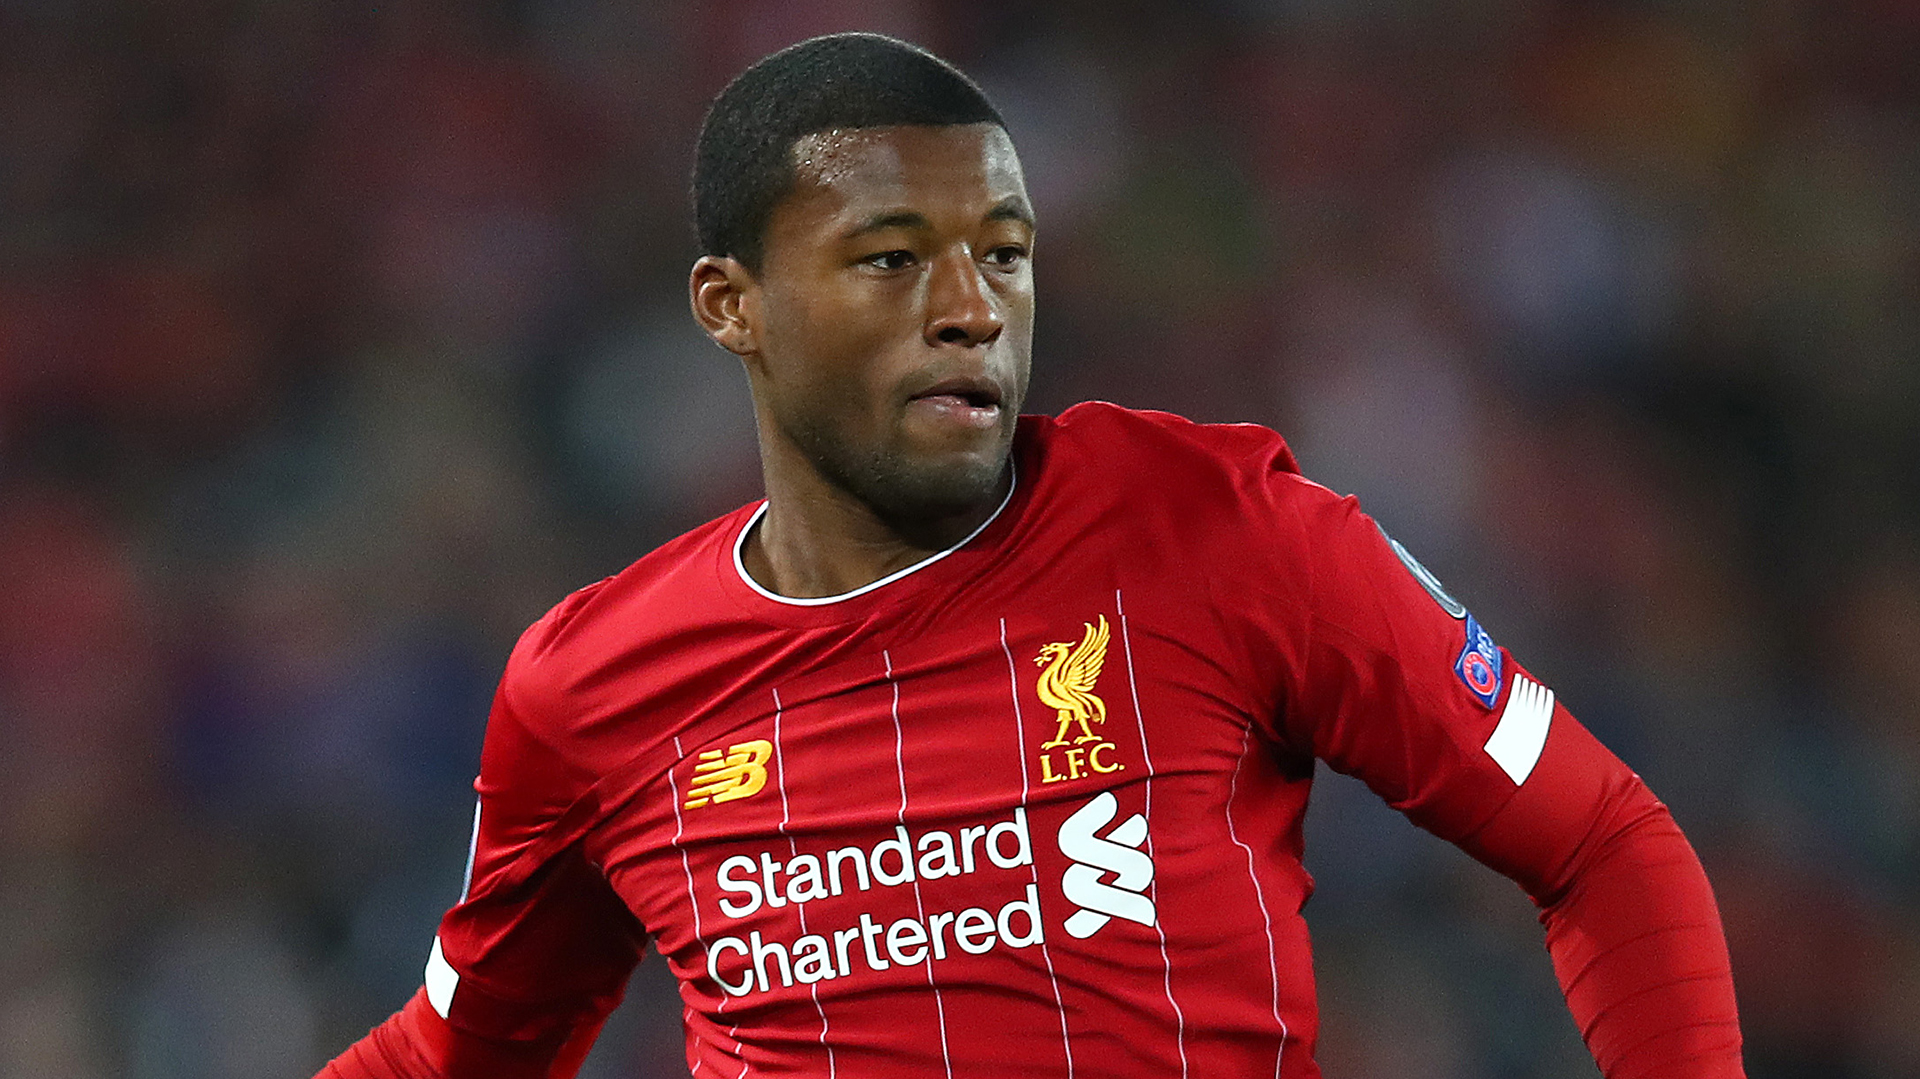 'It depends' - Wijnaldum leaves door open for Liverpool exit with contract talks on hold